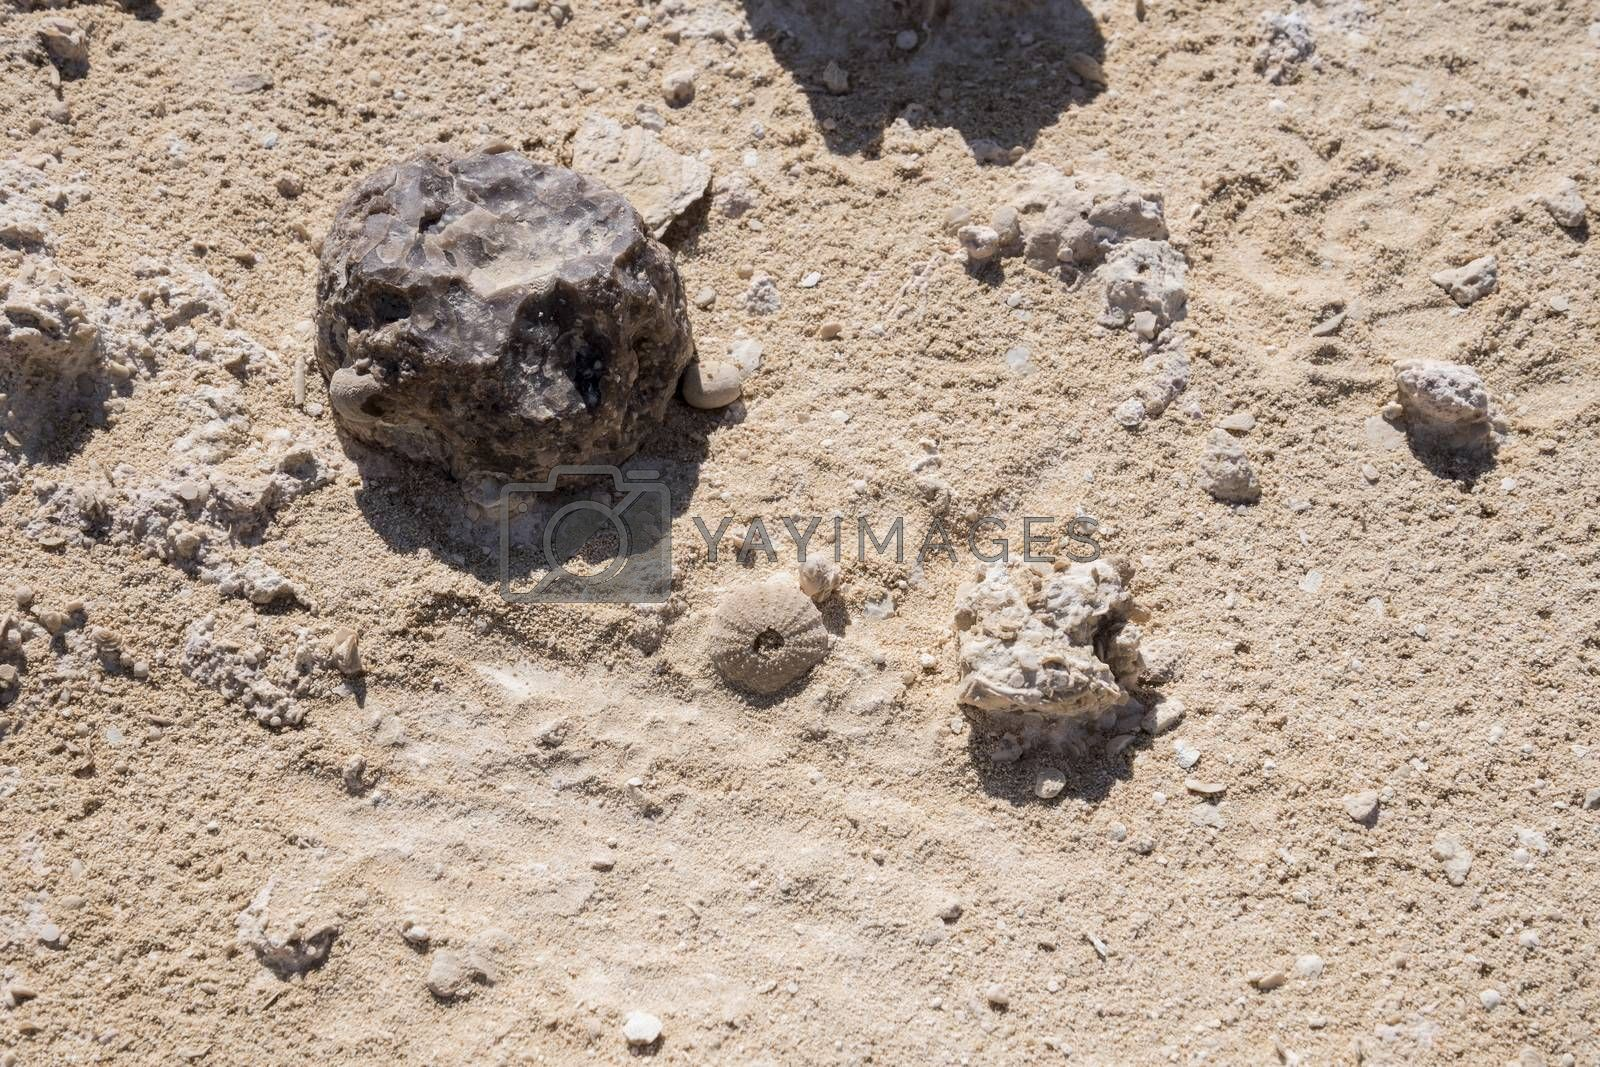 Sea urchin fossil found at Rock Garden (also called Rock Zoo of Duqm or Duqm Stone Park) is a famous tourist attraction of a 3 square kilometer of rock formations (shaped by wind, water and other natural forces), limestone and marine fossils, Duqm, Sultanate of Oman